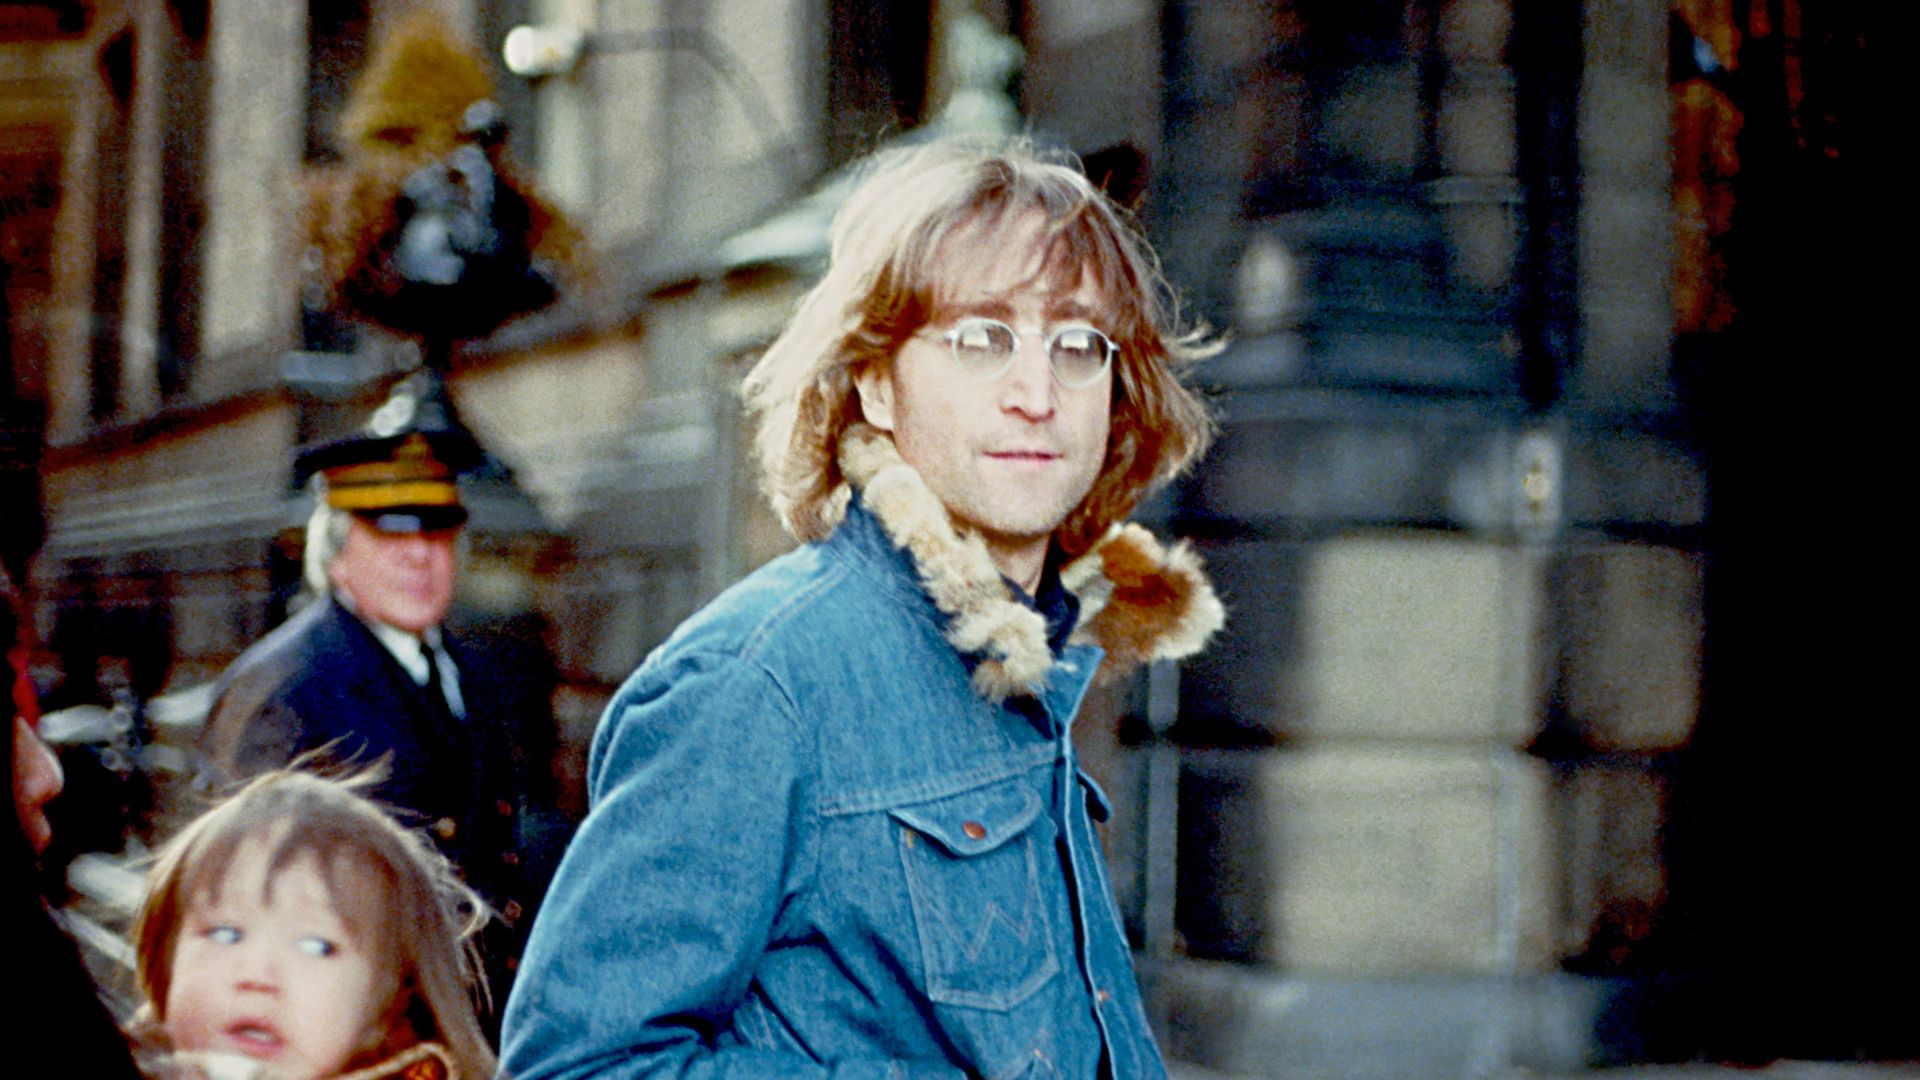 John Lennon in New York in 1977, with wife Yoko Ono and son Sean - Credit: Getty Images